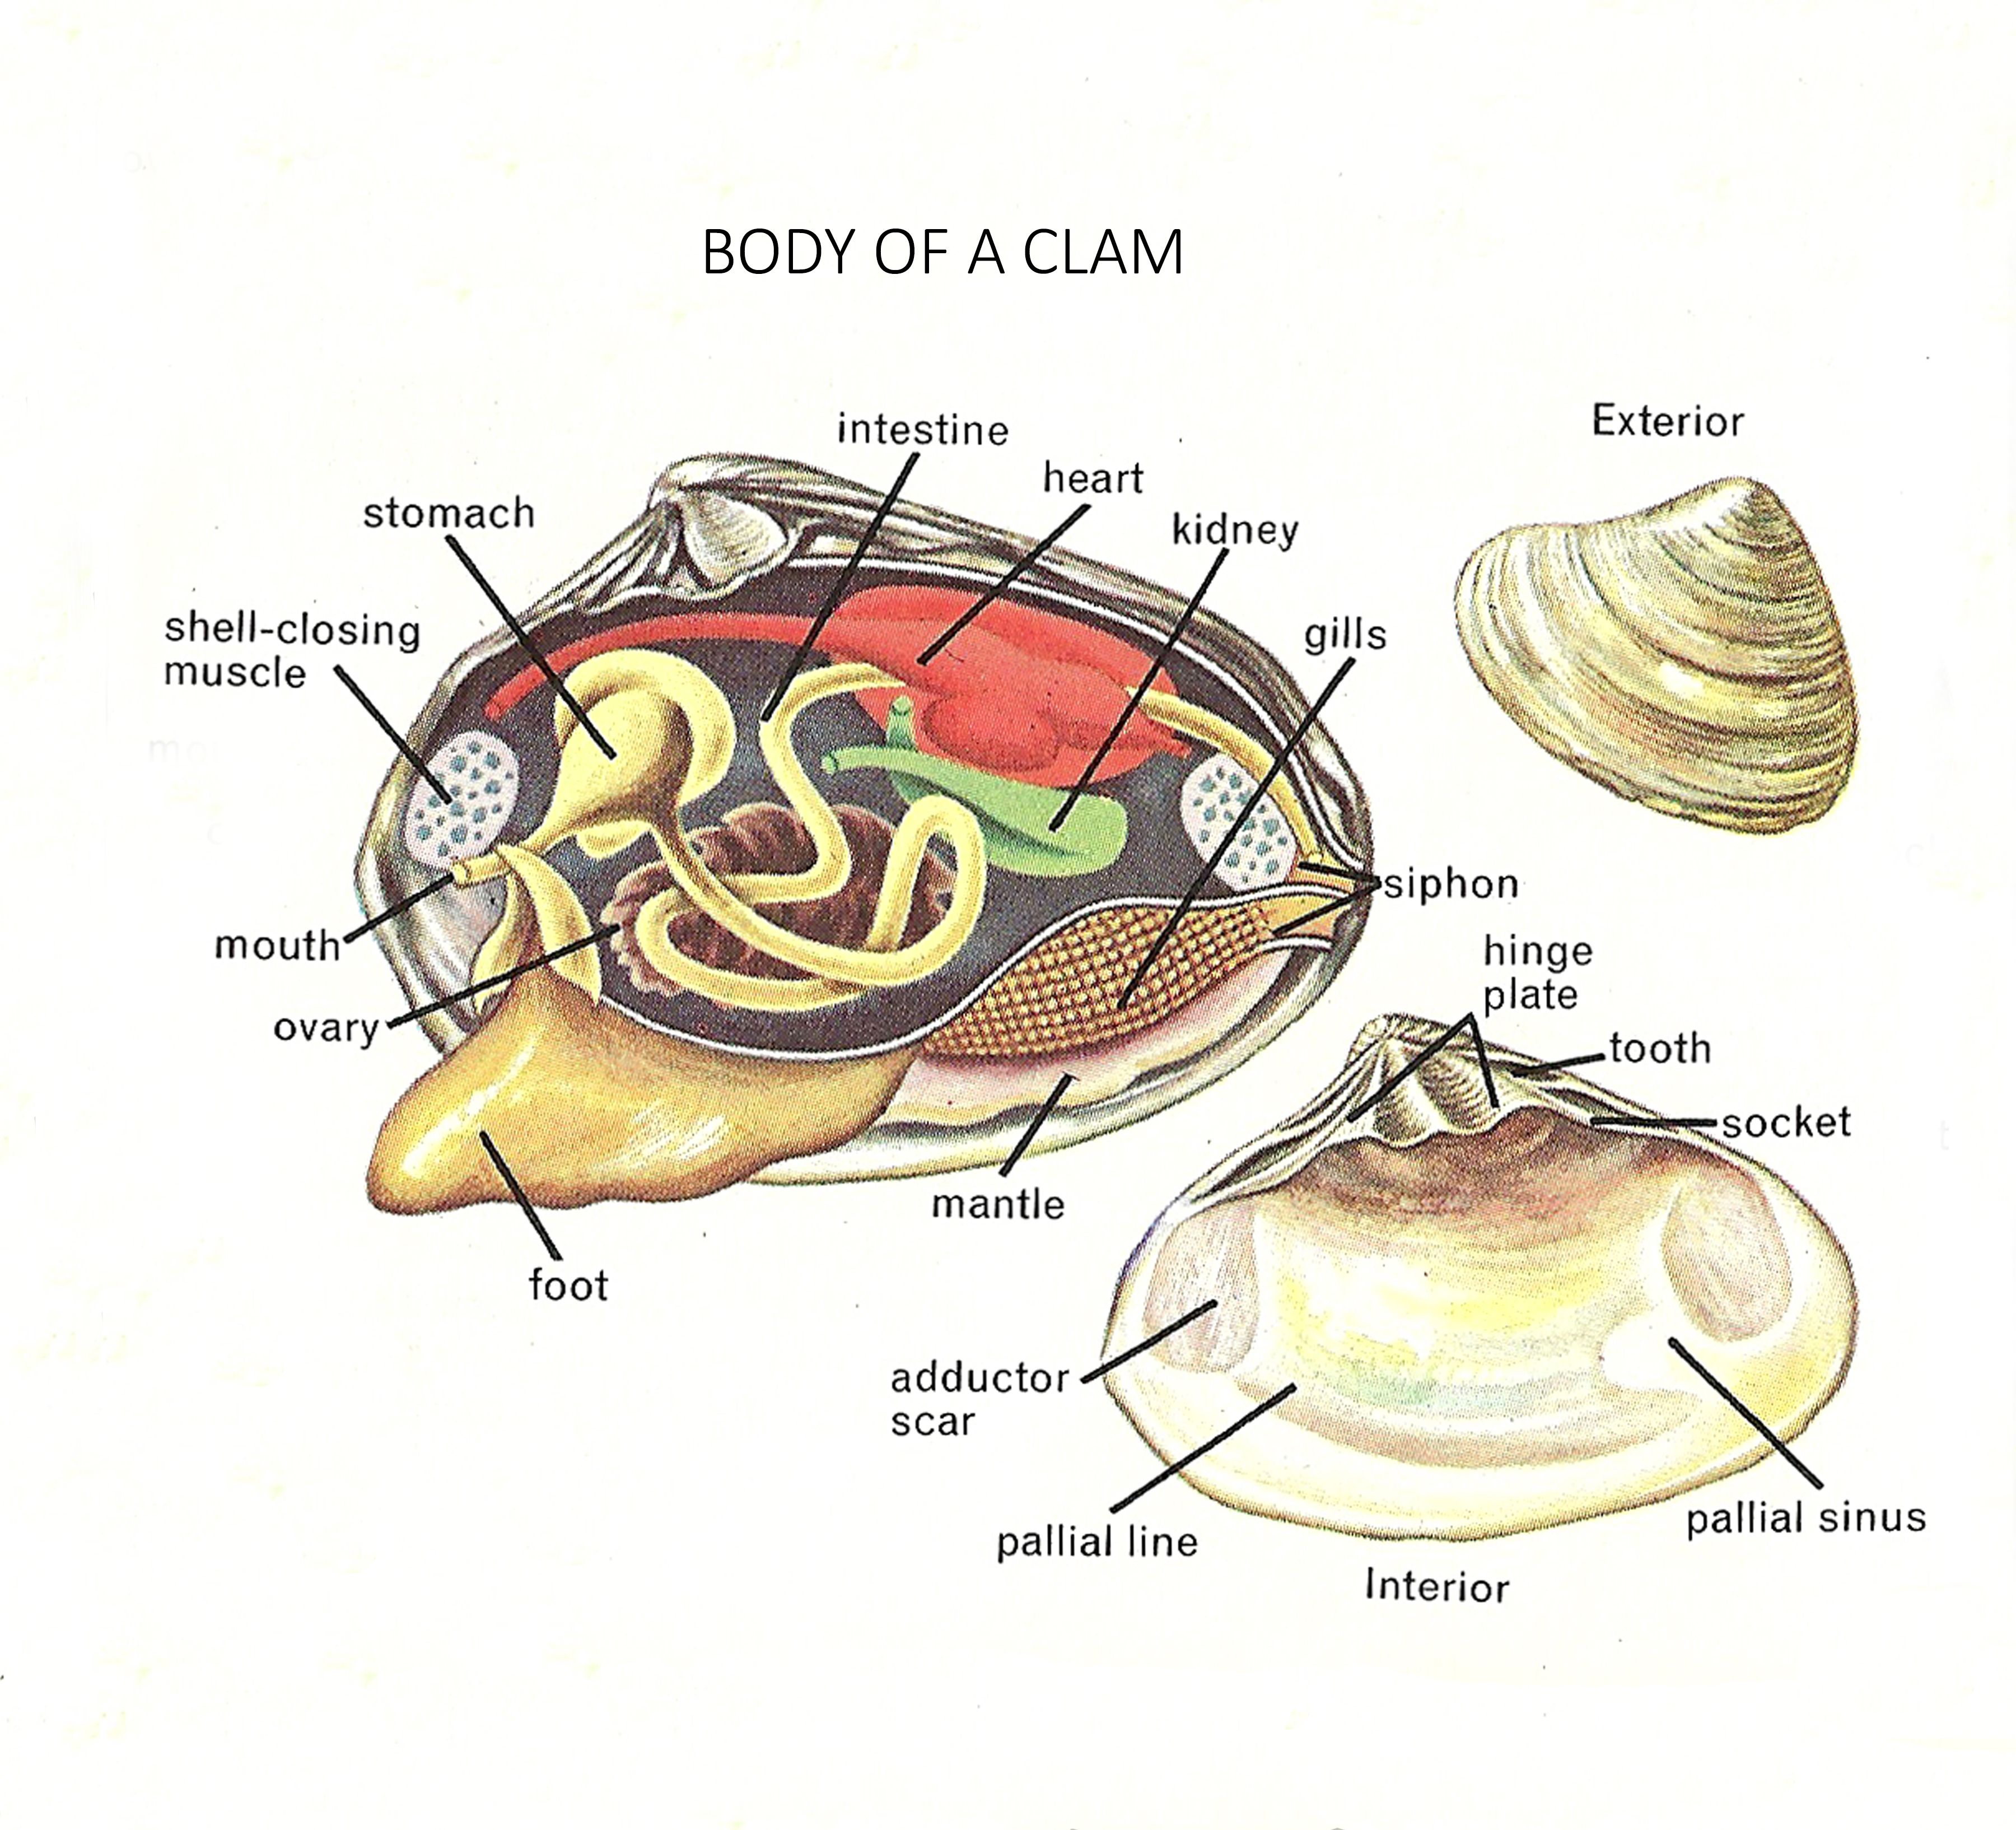 mollusca diagram labeled vw polo mk4 radio wiring clam anatomy and functions images human